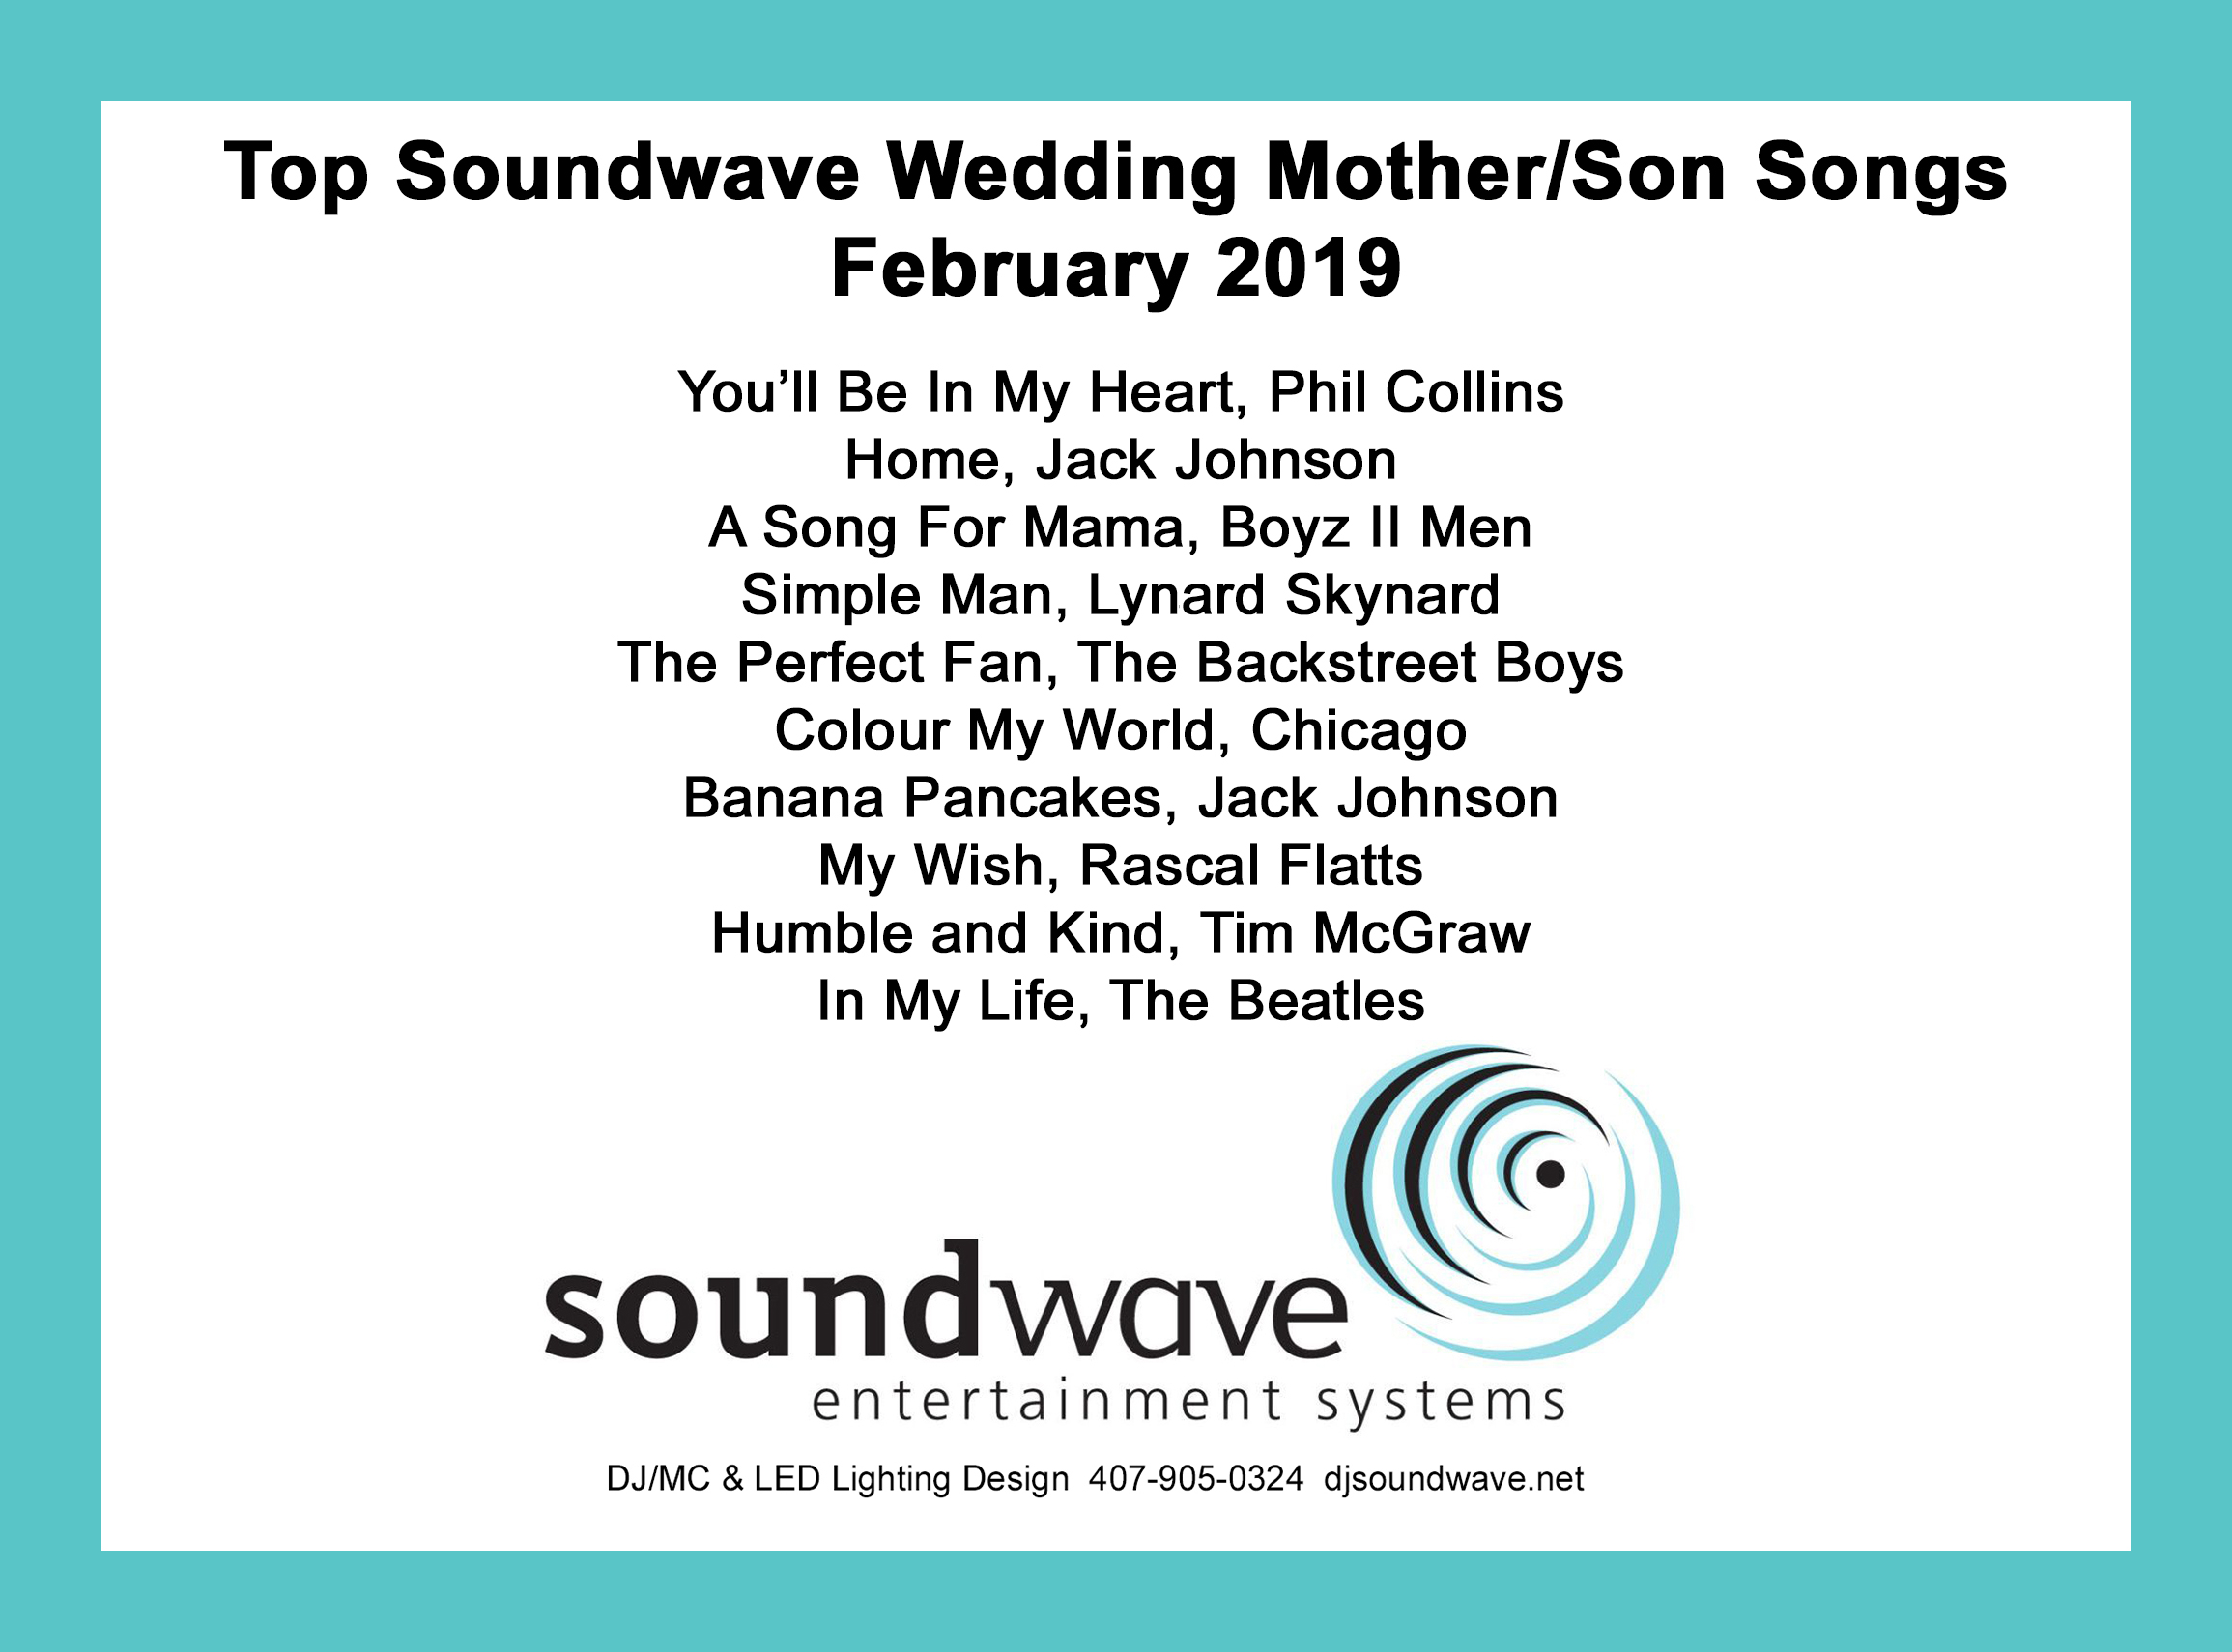 mother son dance songs - orlando wedding dj - orlando djs - soundwave entertainment